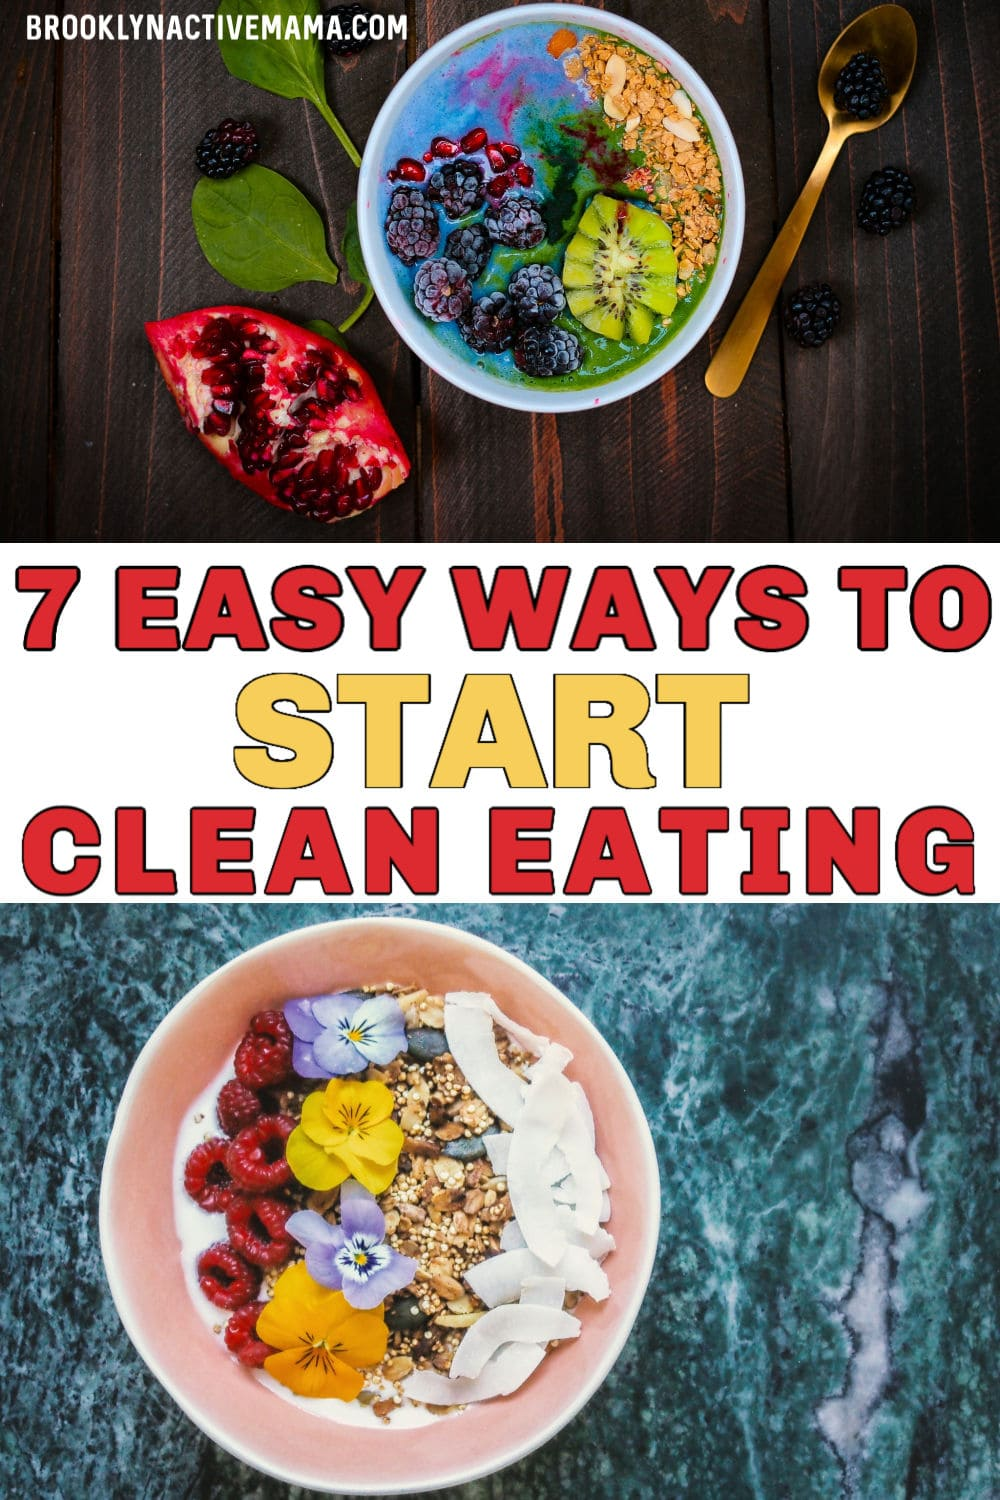 Ready to take the plunge into clean eating but not sure how to get onto it with your hectic lifestyle? Here are 7 tips for clean eating on the go!